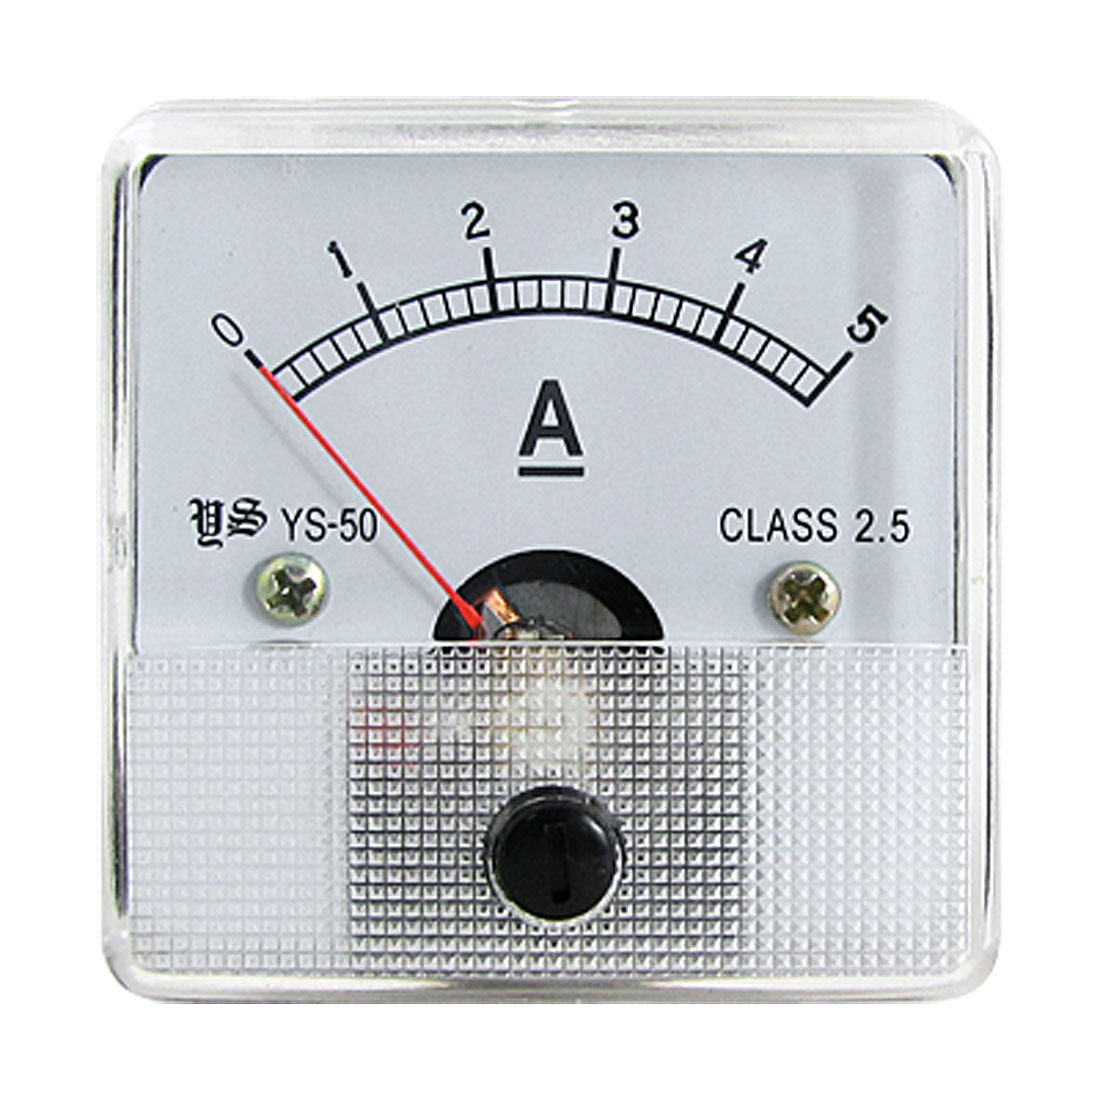 Class 2.5 DC 0-5A Analog Ampere Meter Current Measuring Head